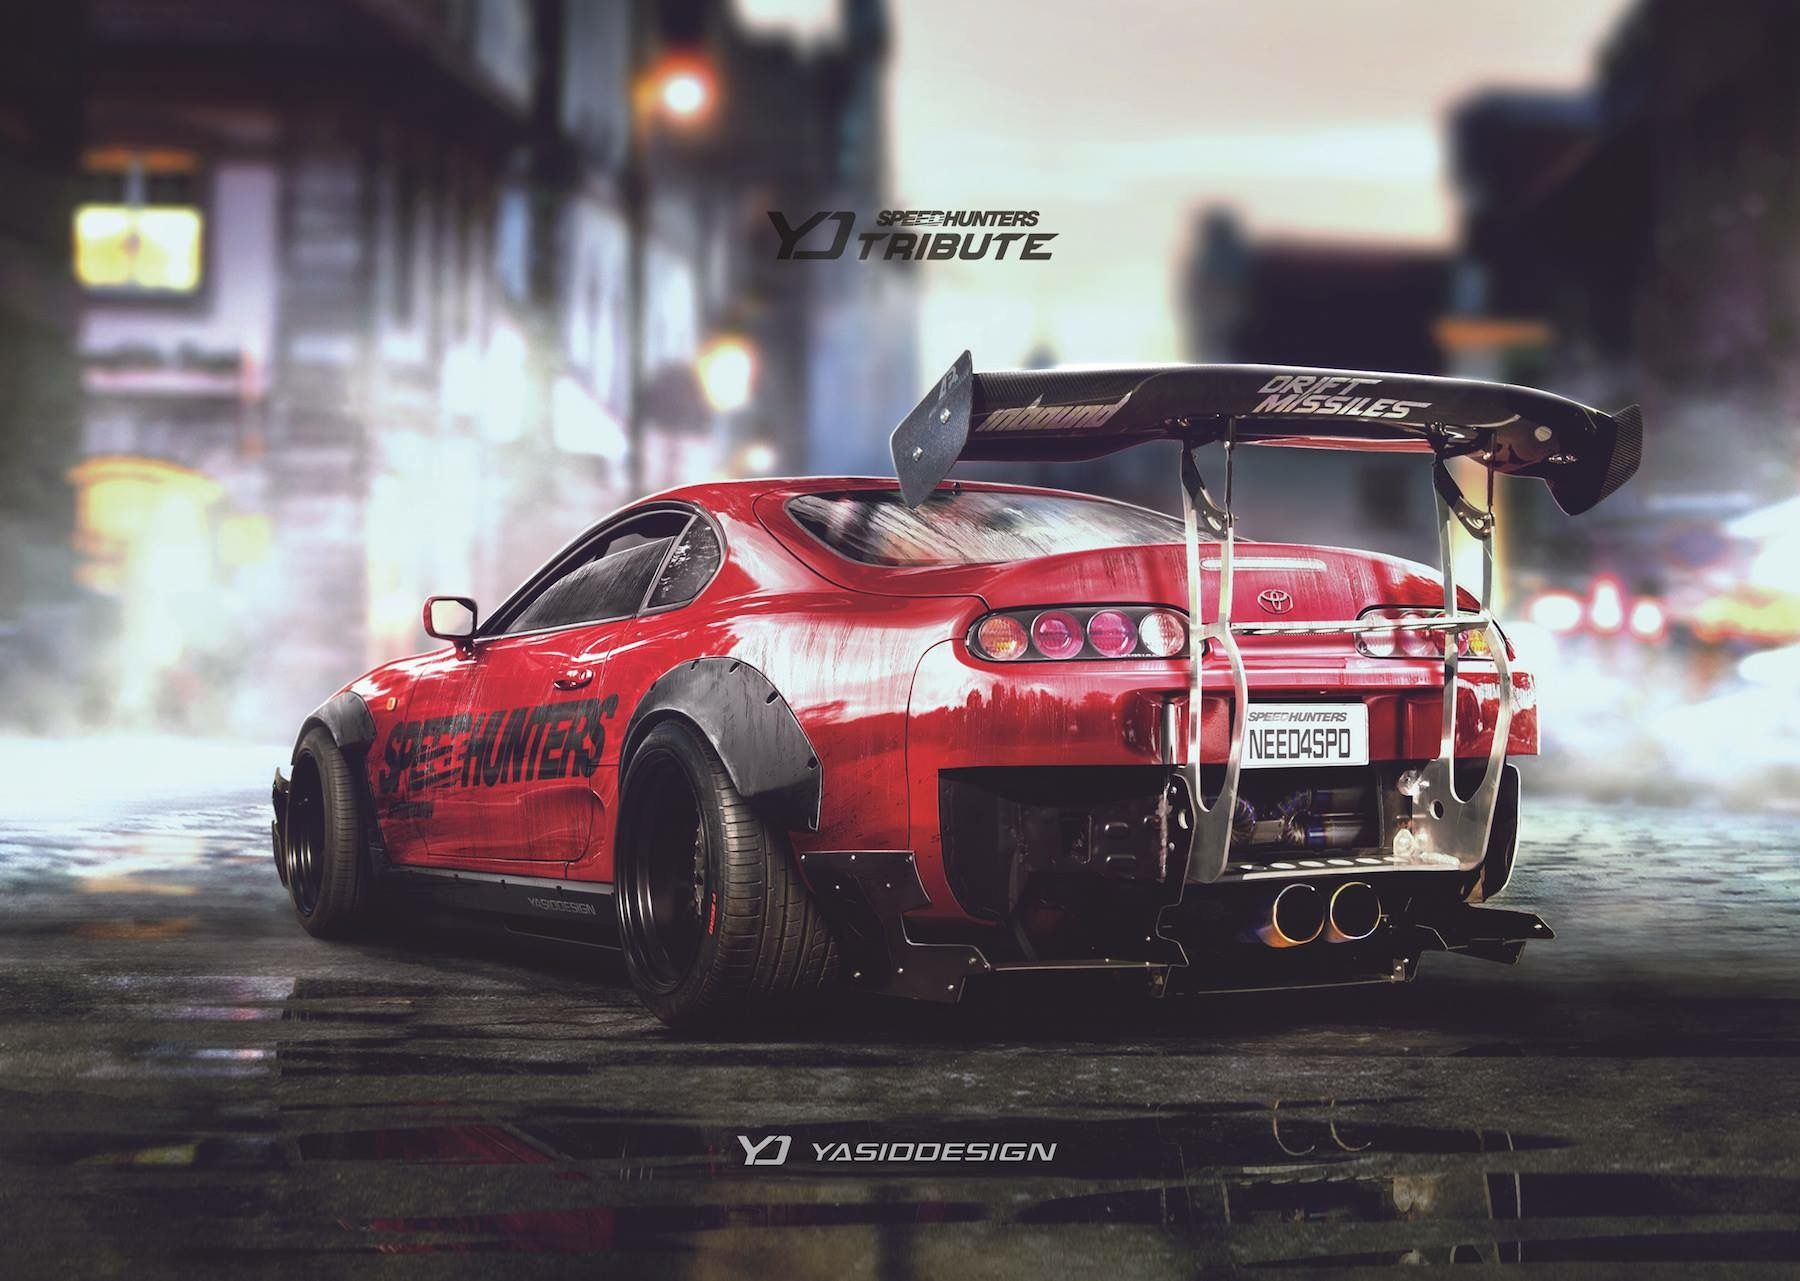 Supra Mk4 Wide Body Jdm Modified Toyota Supra Sports Car Wallpaper Need For Speed Cars